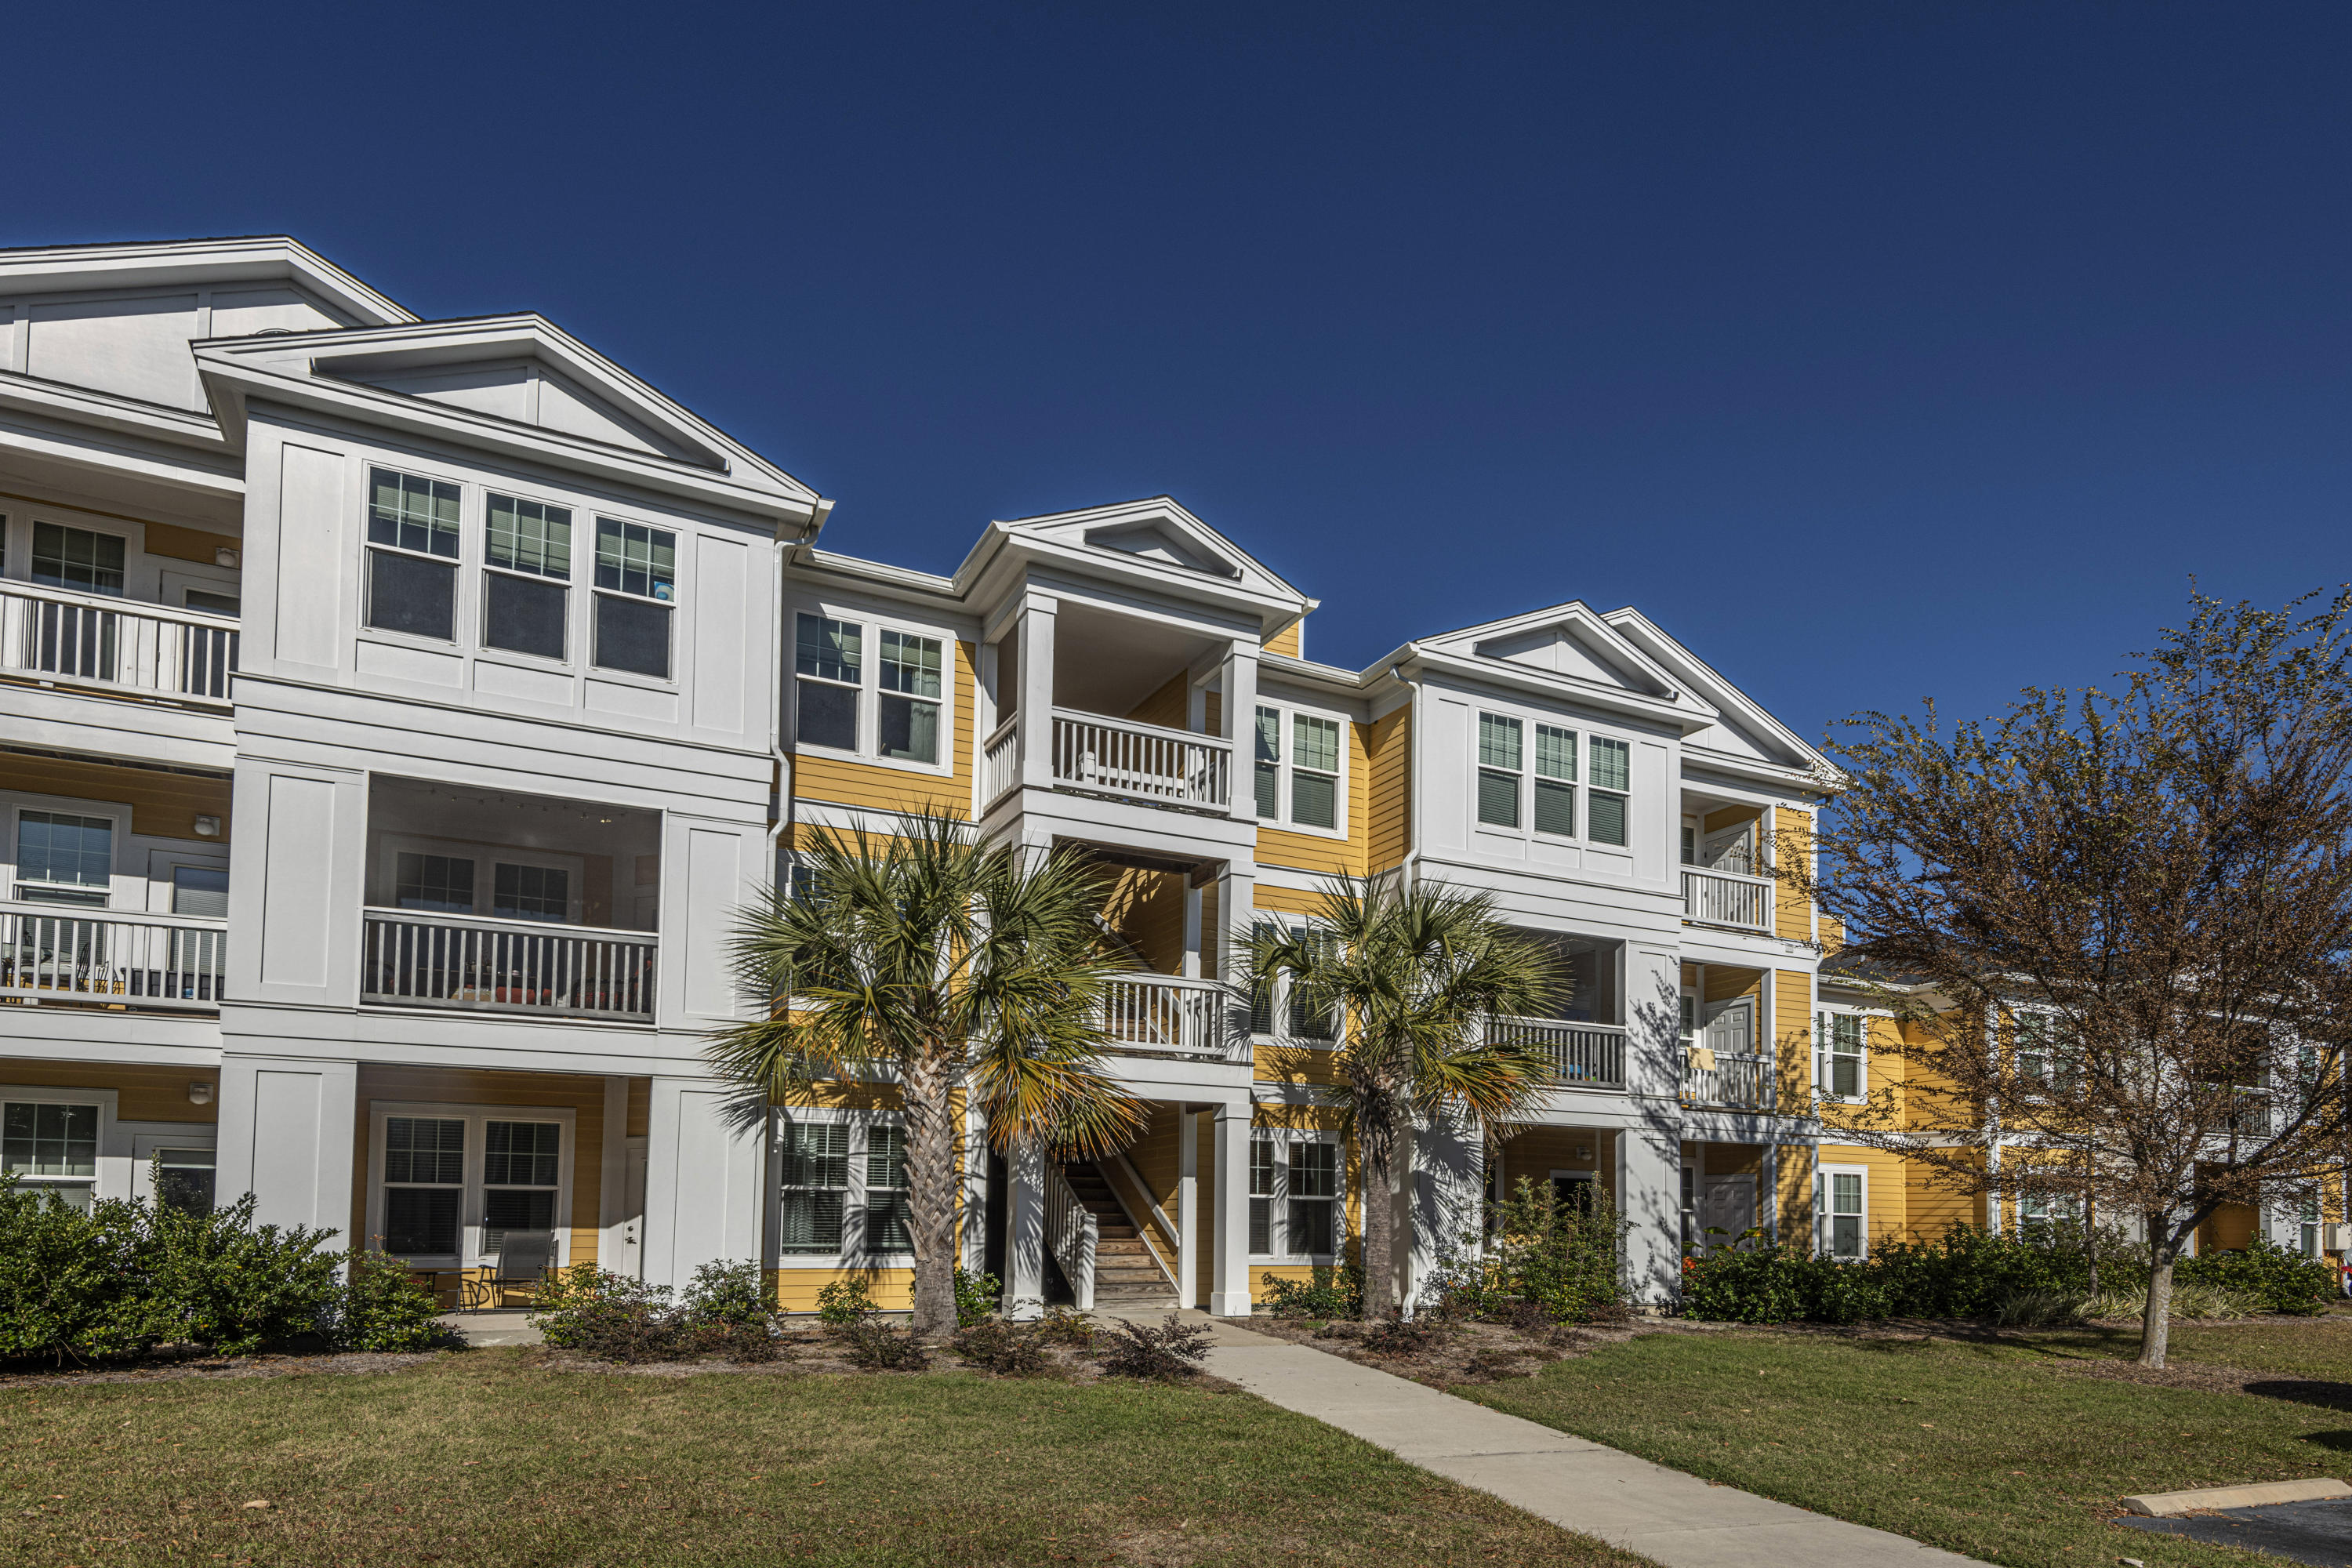 Southampton Pointe Homes For Sale - 2112 Chatelain, Mount Pleasant, SC - 16